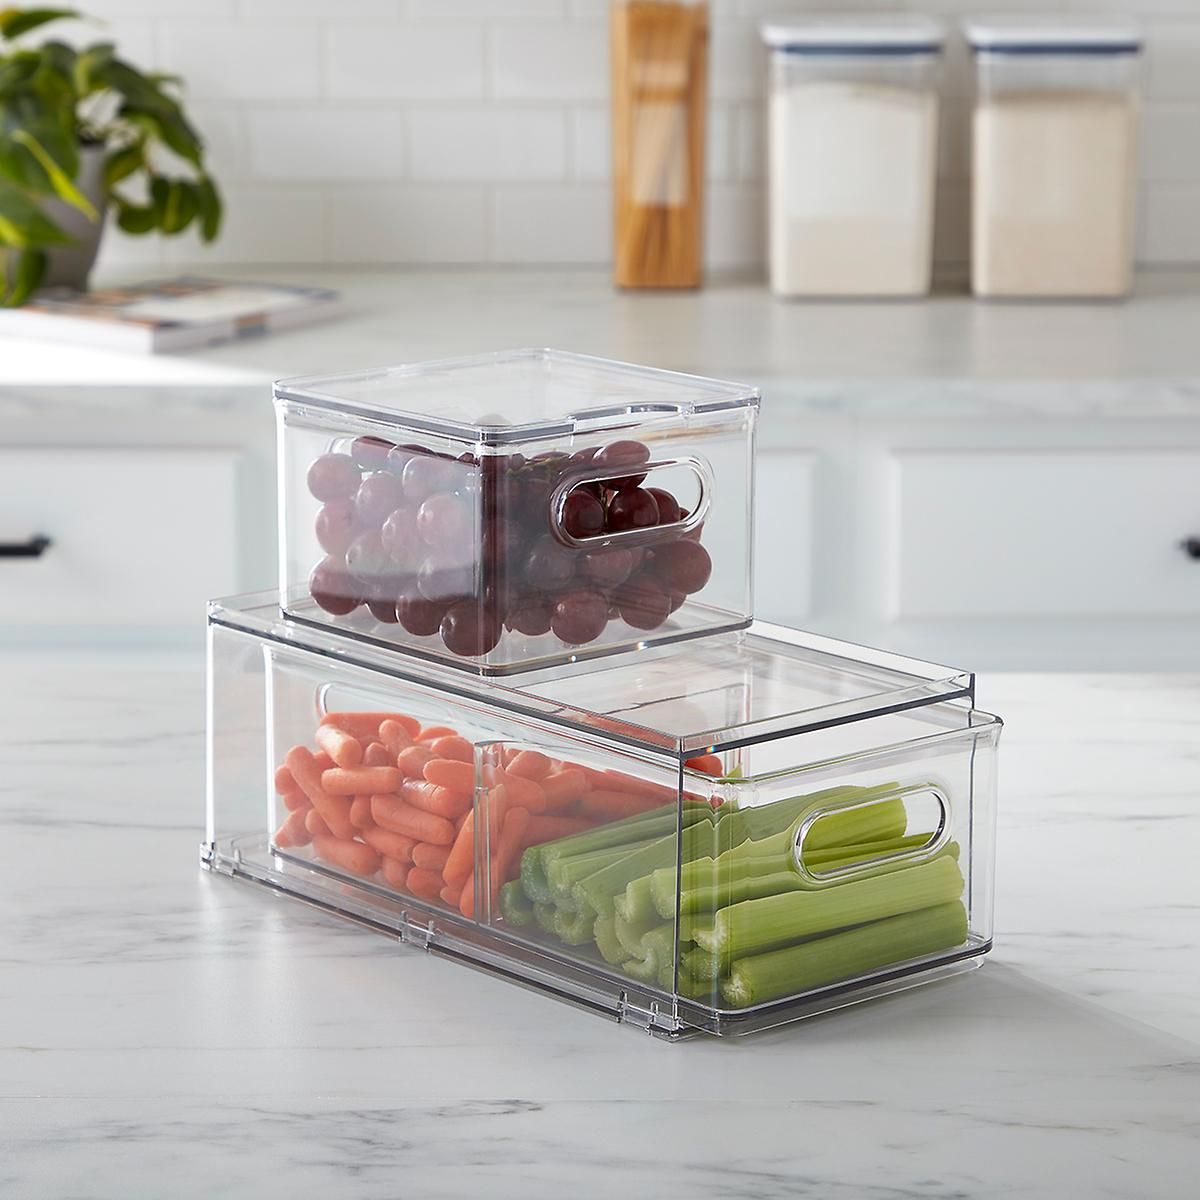 Two stacked clear storage bins containing fruits and vegetables